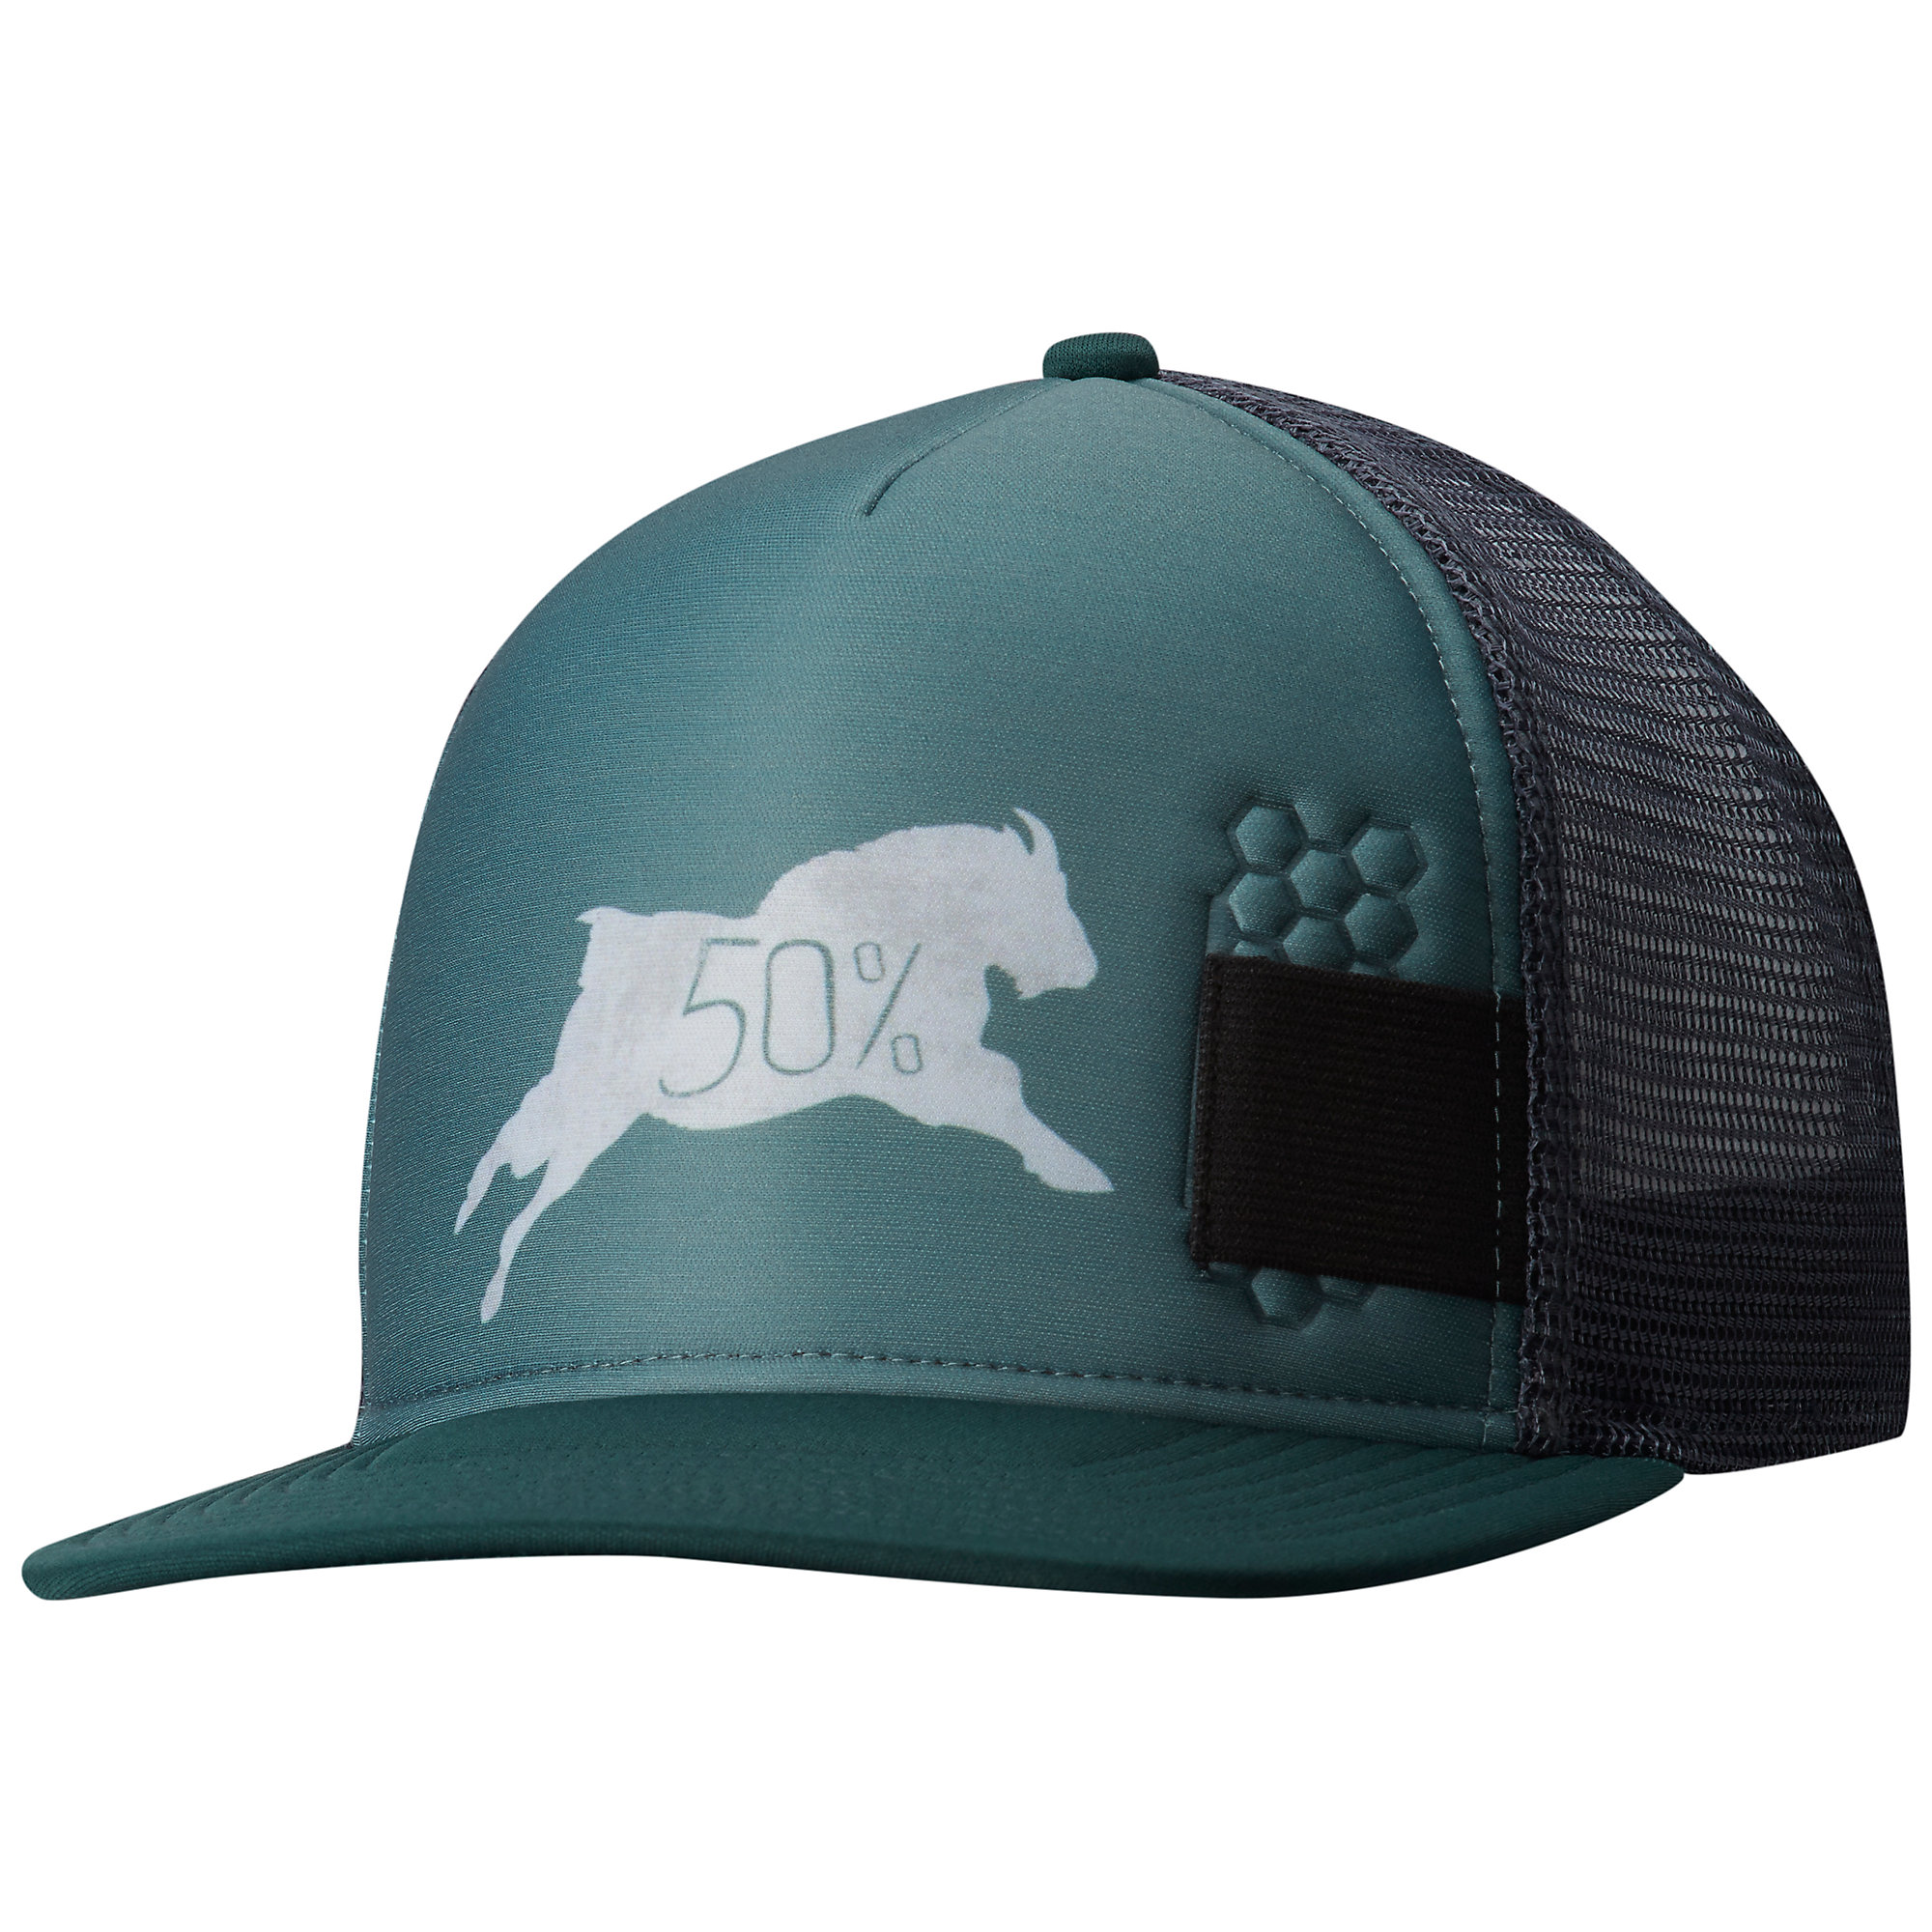 Mountain Hardwear Firestarter Trucker Cap